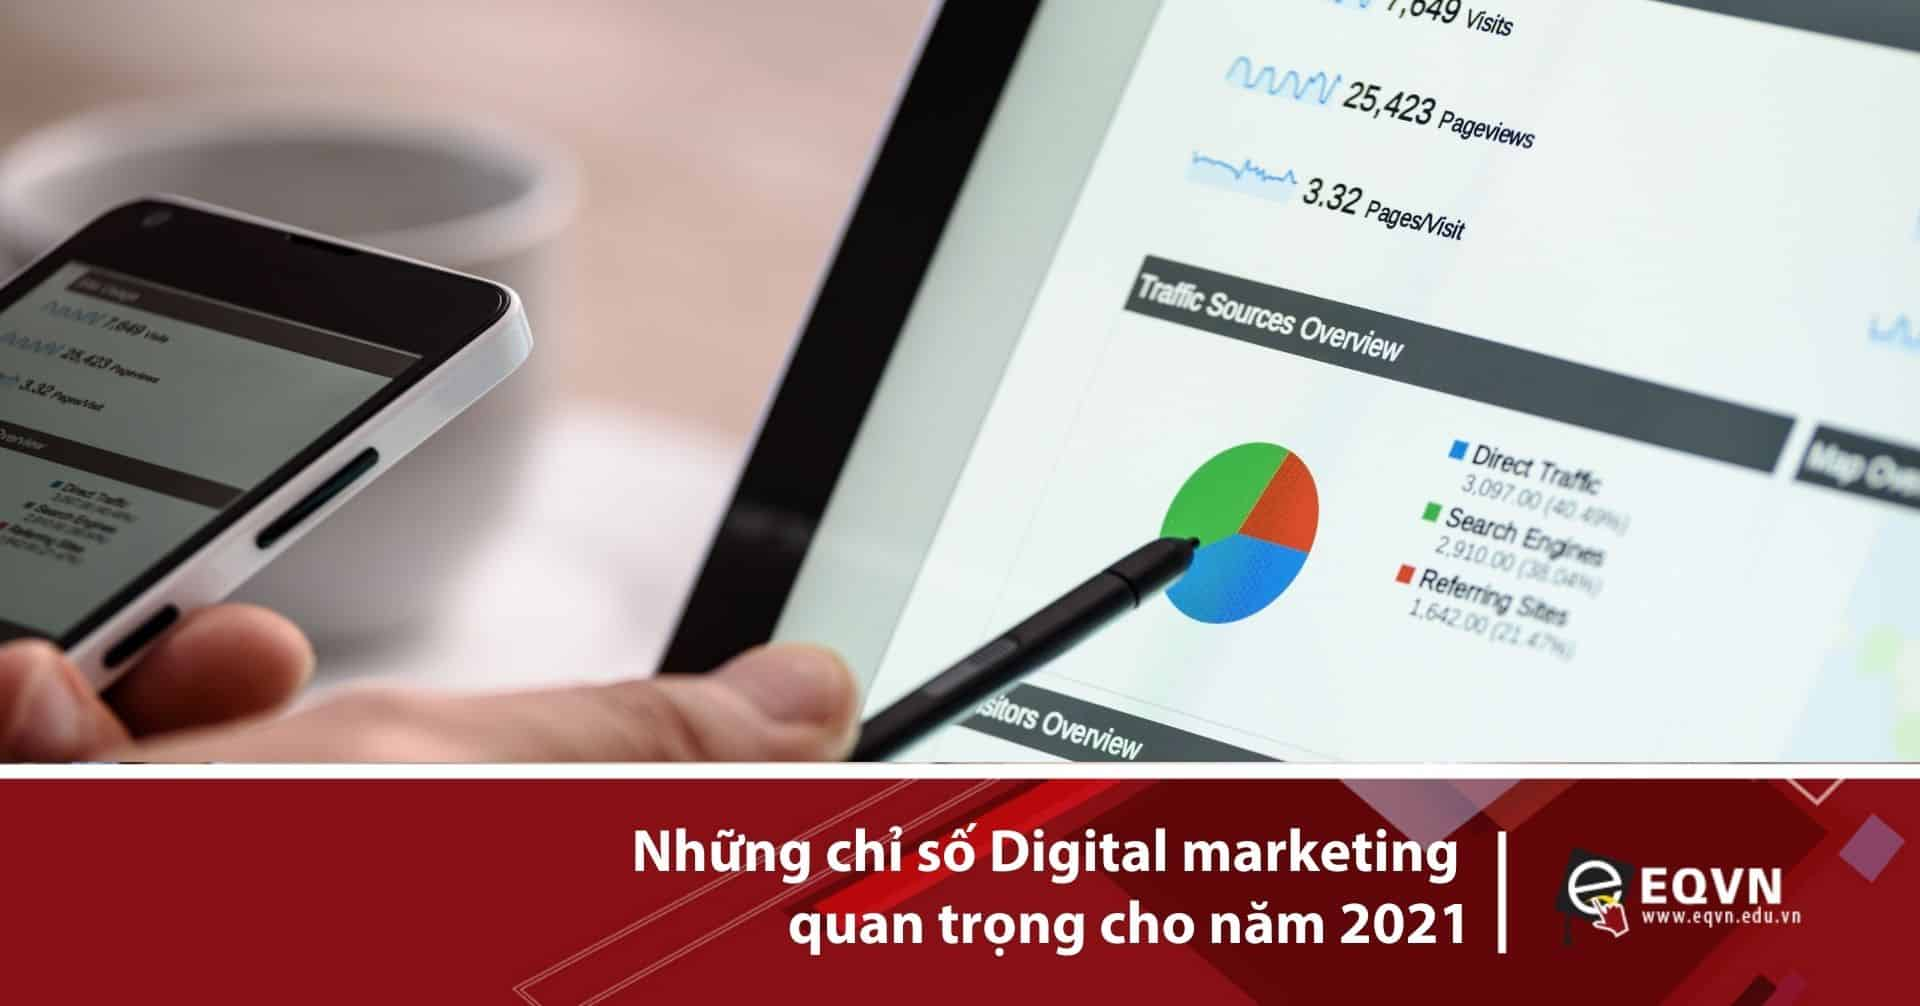 xu hướng digital marketing 2021